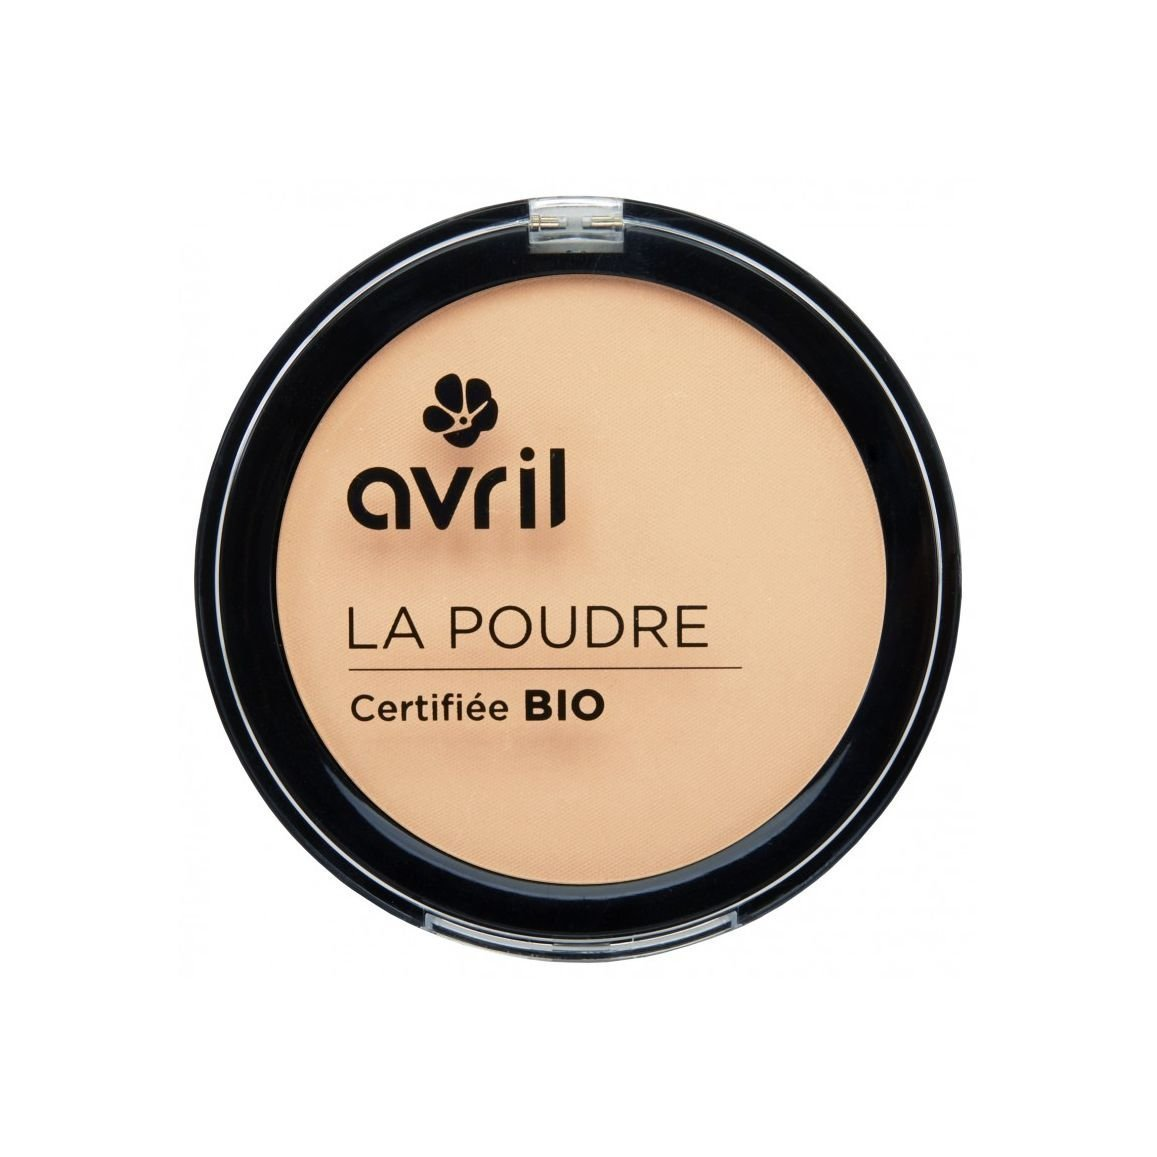 Avril Organic Pressed Powder Compact Foundation - Porcelaine BHBAZUSF0518A4046